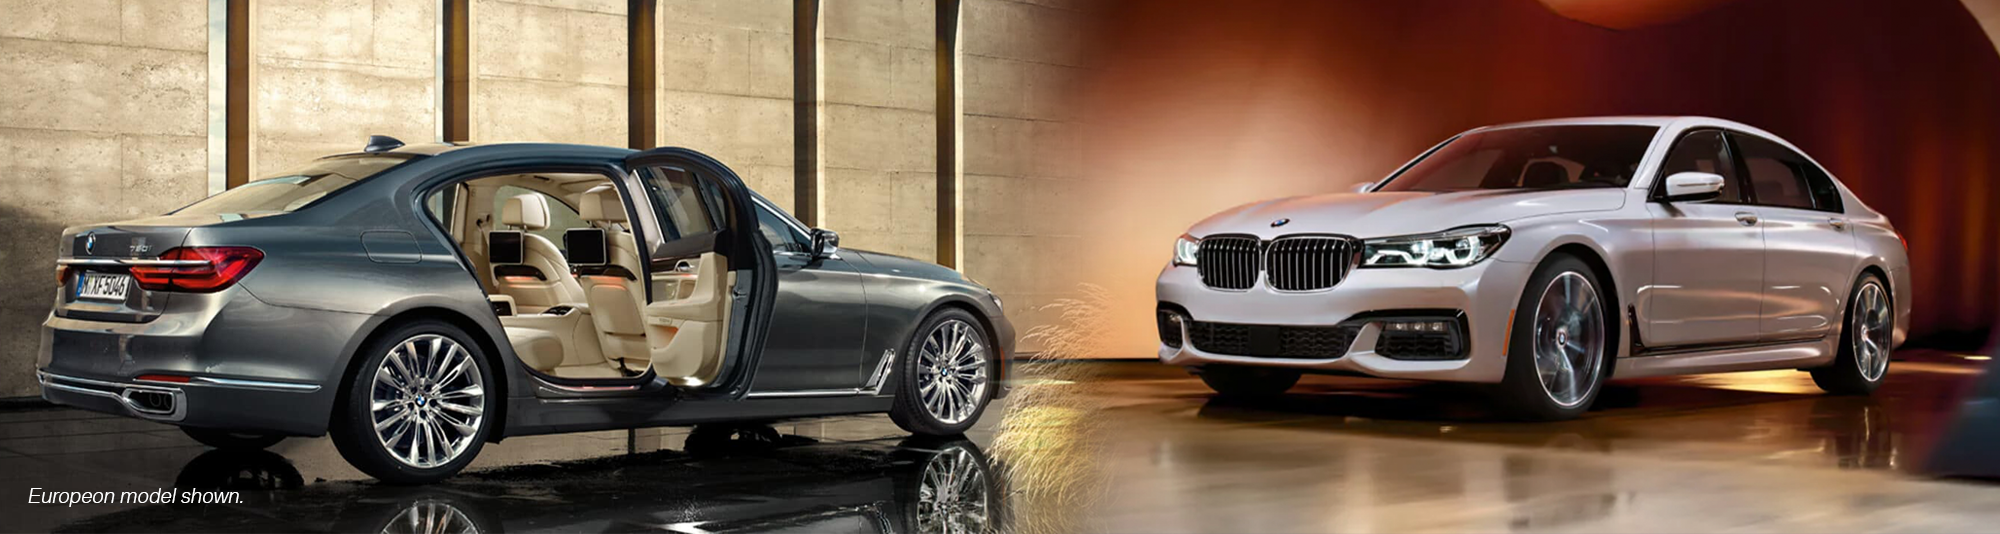 The 2017 BMW 7